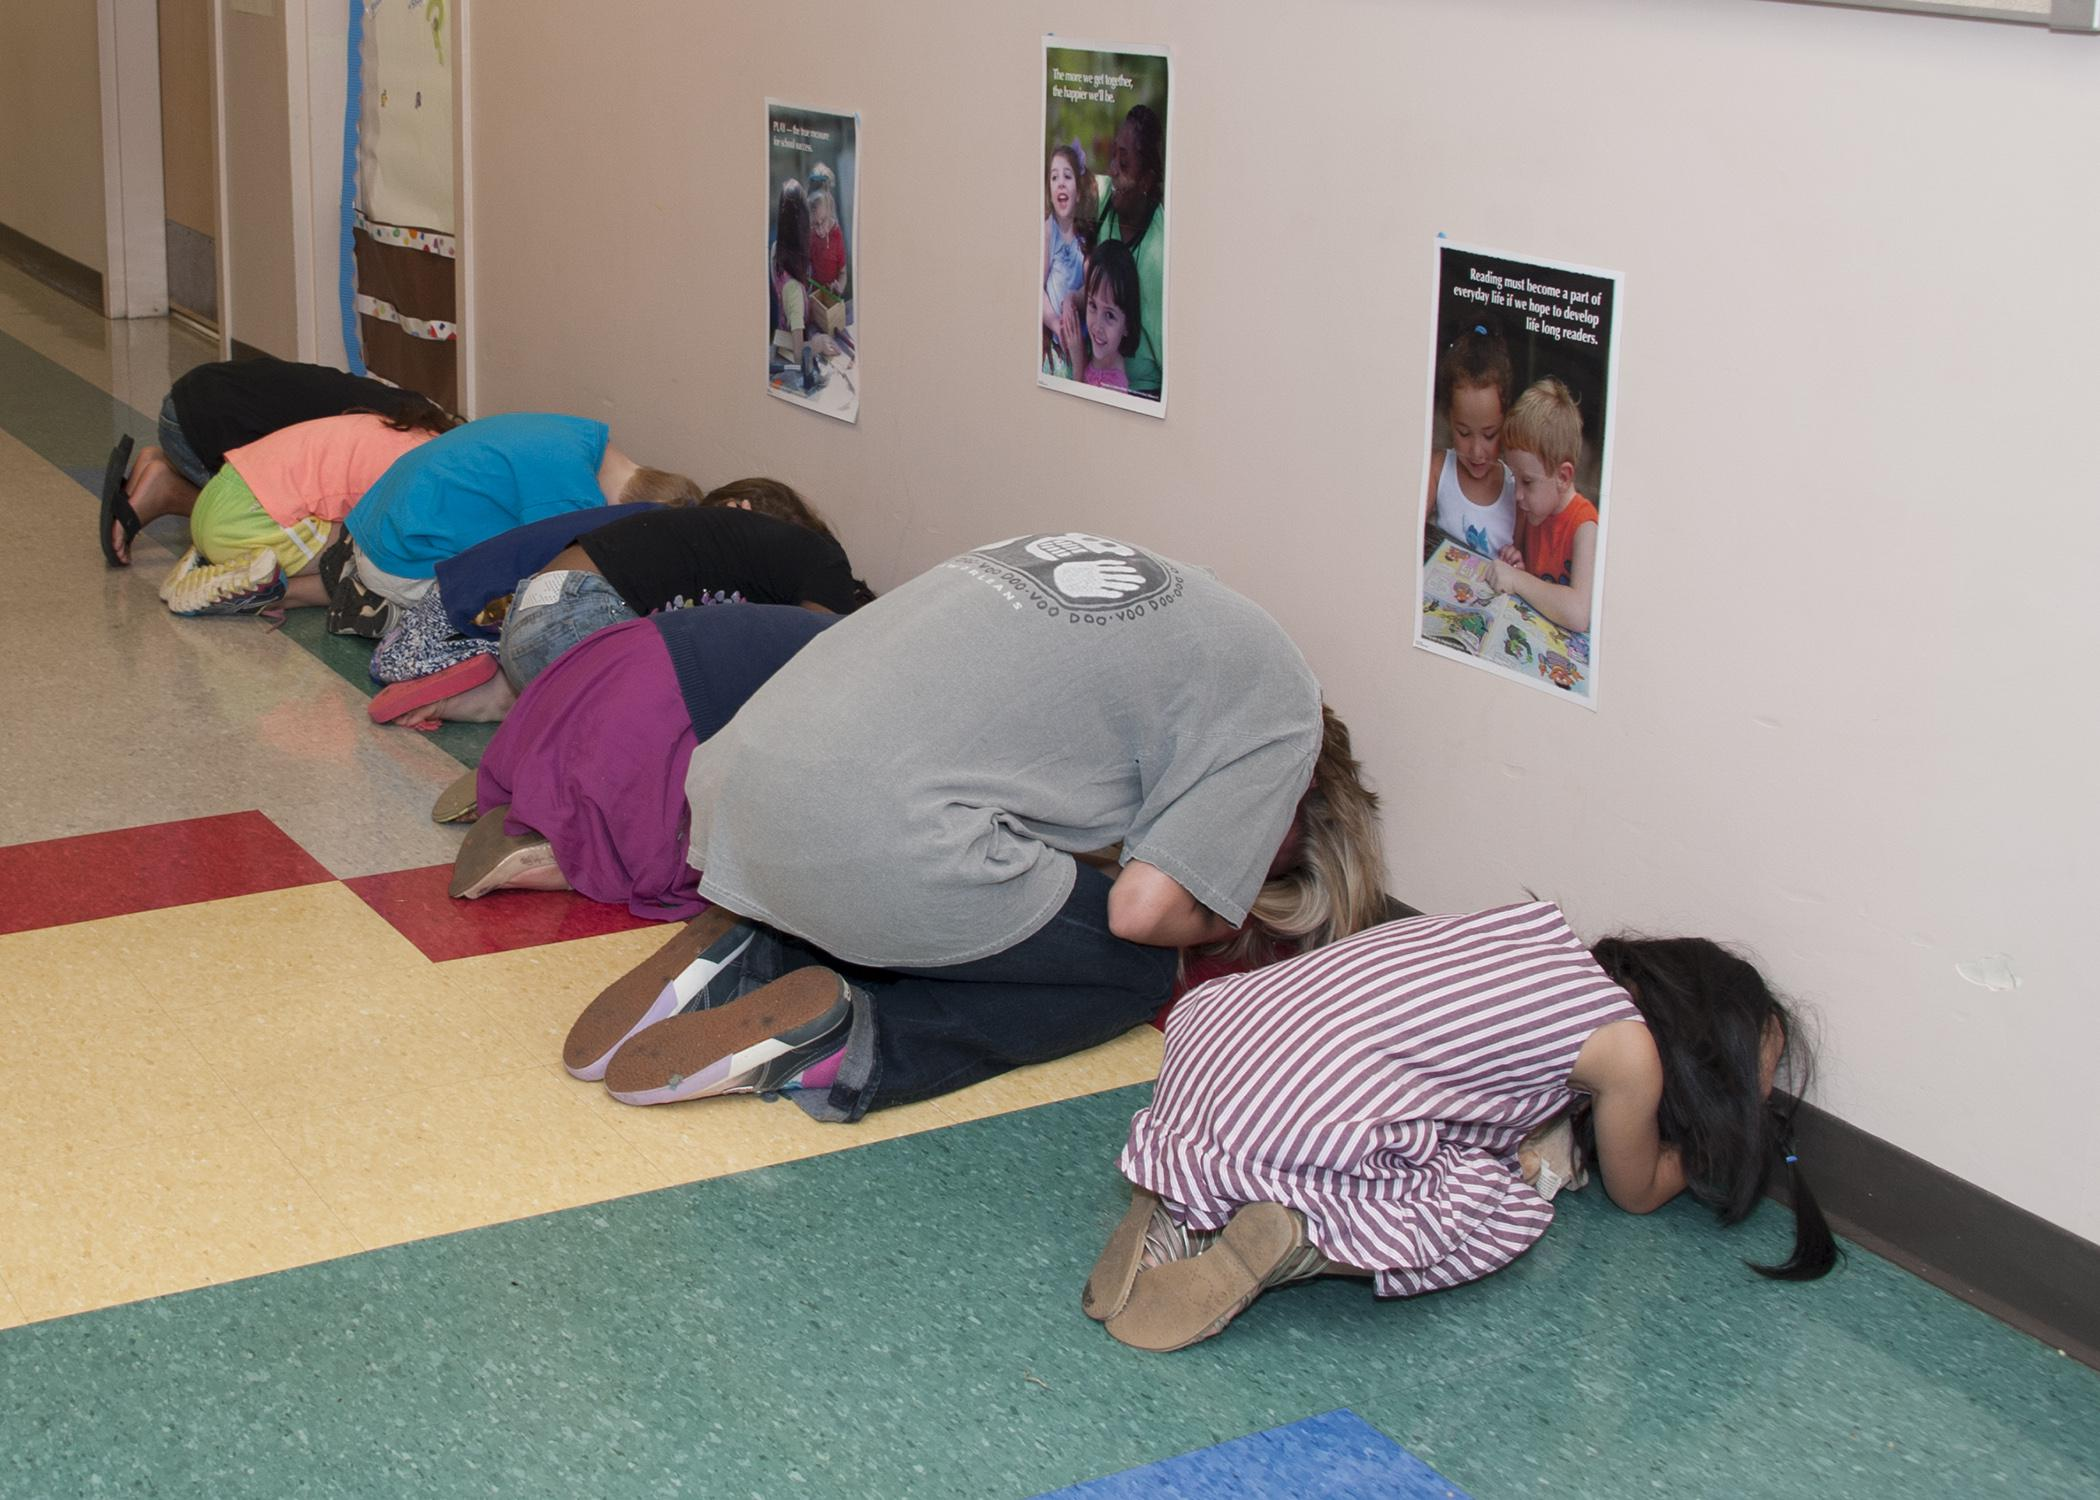 Preschoolers and workers practice together during a tornado drill at the Mississippi State University Child Development and Family Studies Center on July 16, 2014. (Photo by MSU Ag Communications/Kat Lawrence)